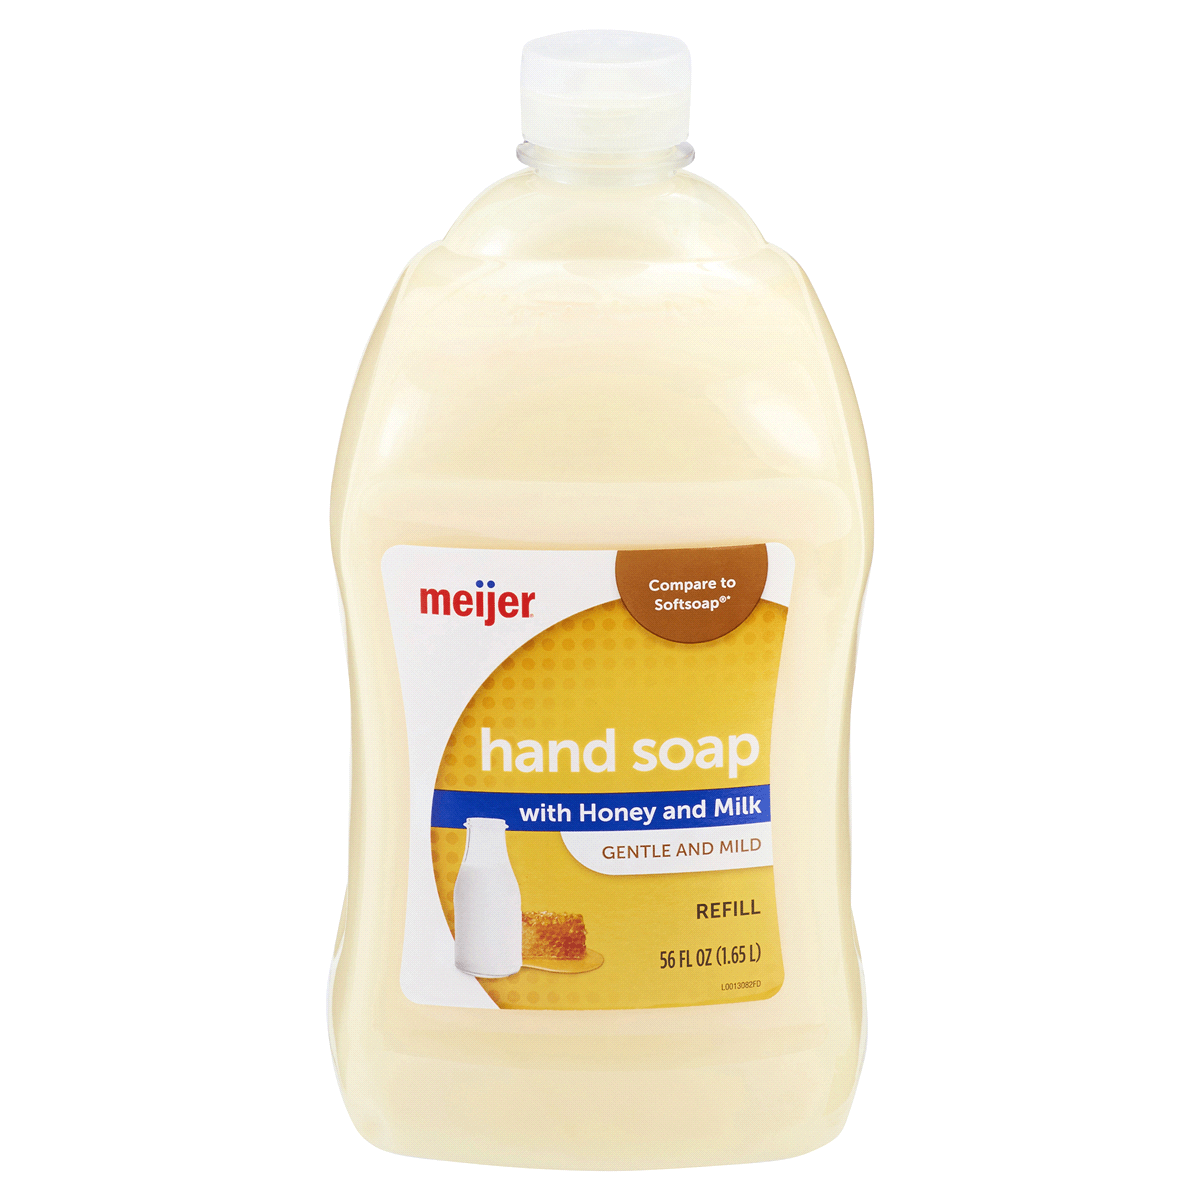 Hand Soap Refill Meijer Milk And Honey Hand Soap Refill 56 Oz